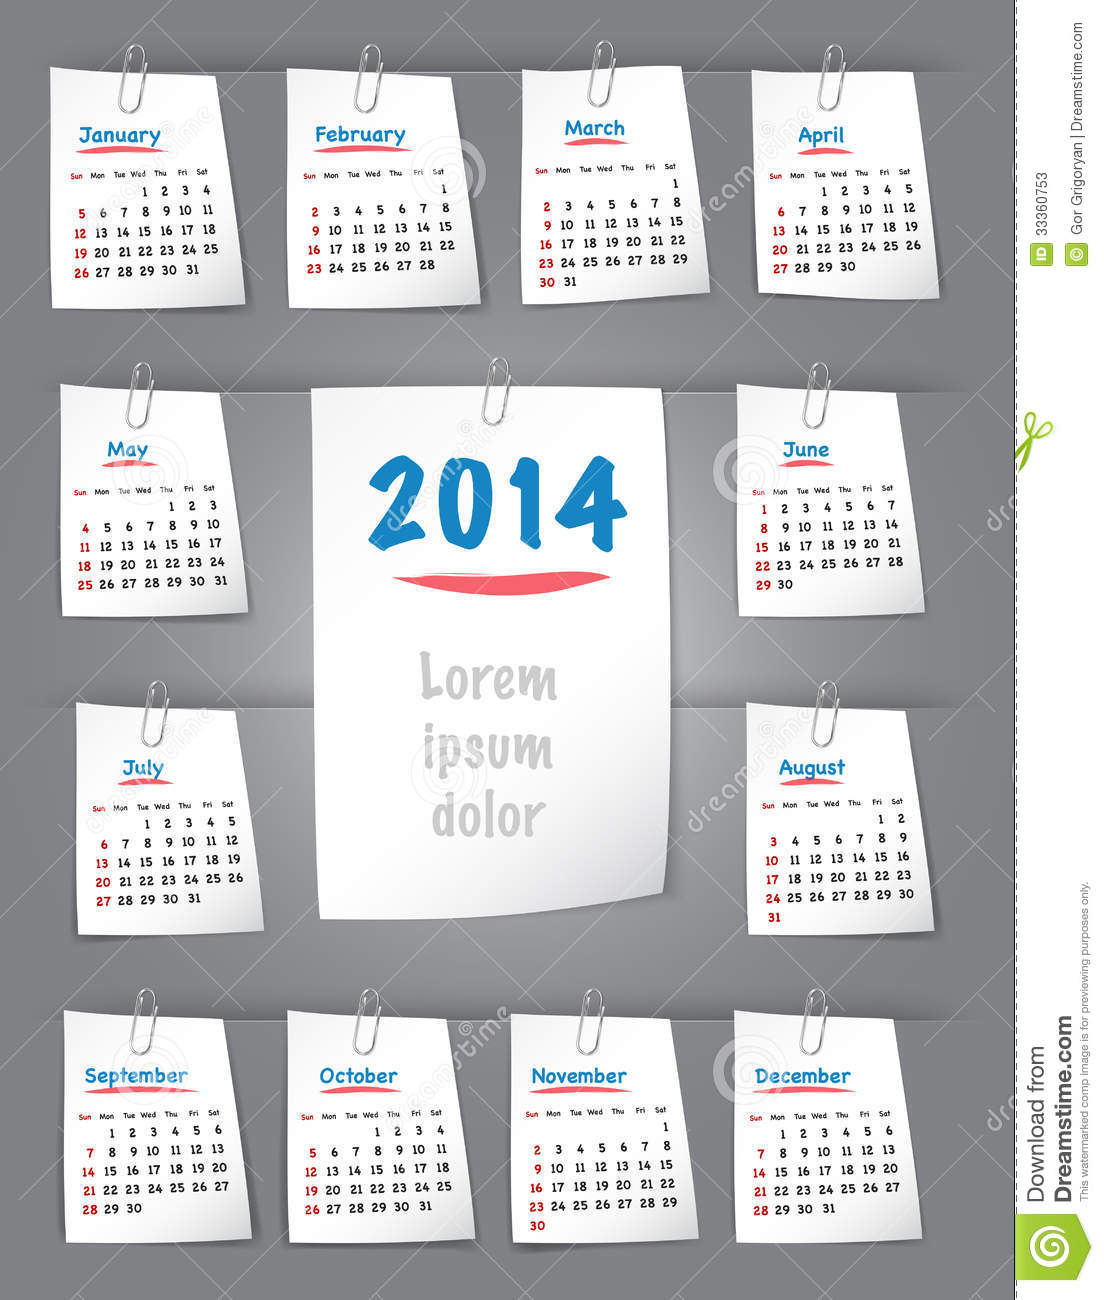 Calendar For 2014 Year On Sticky Notes Attached To The